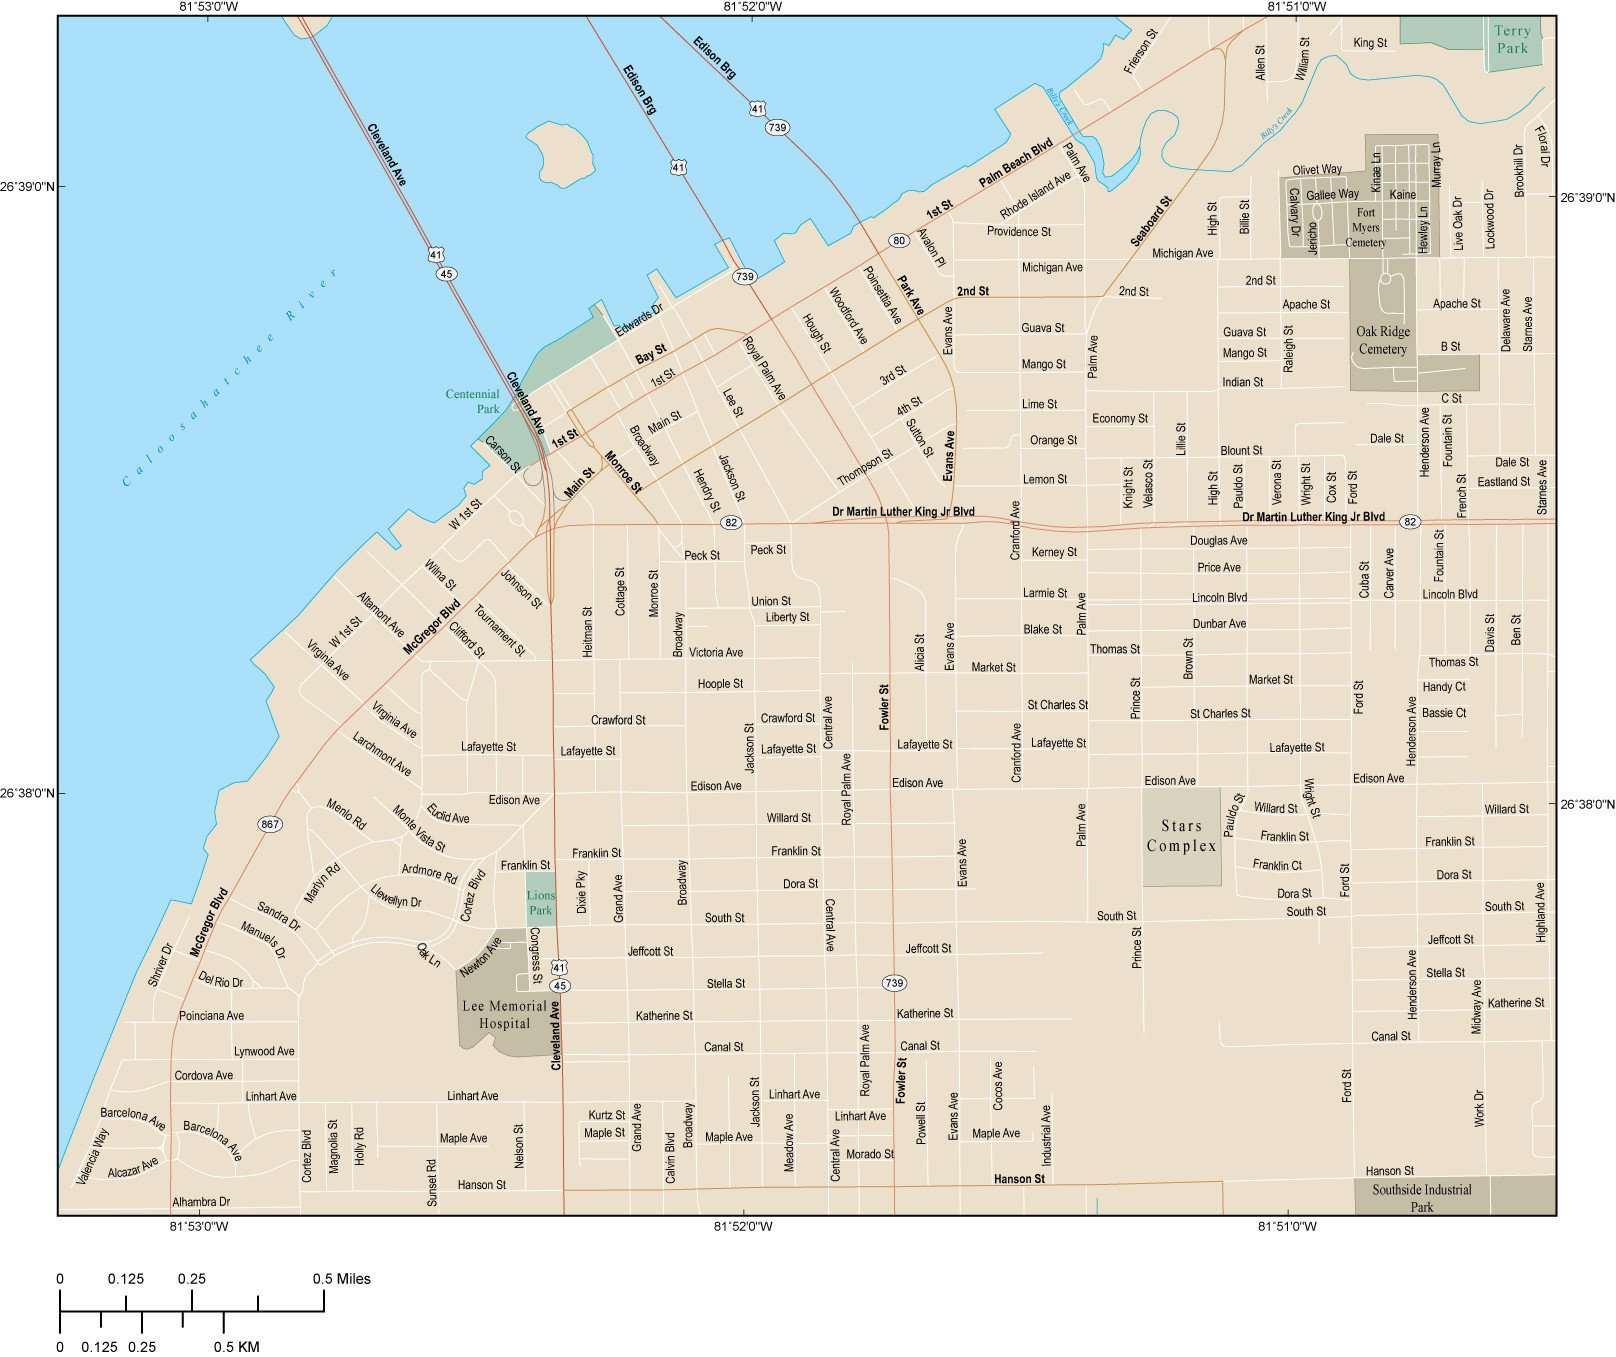 Including Map Of Fort Myers Florida on map of saint lucie florida, map of dover florida, map of little torch key florida, map of port of miami florida, map of the treasure coast florida, map of myers beach florida, map of longview florida, map of lawtey florida, map of captiva florida, map of sarasota florida, map of chokoloskee florida, map of iona florida, map of big coppitt key florida, map of cape coral florida, map of nashville florida, street map fort myers beach florida, map of riverside florida, map of florida cities, map of the acreage florida, map of three oaks florida,